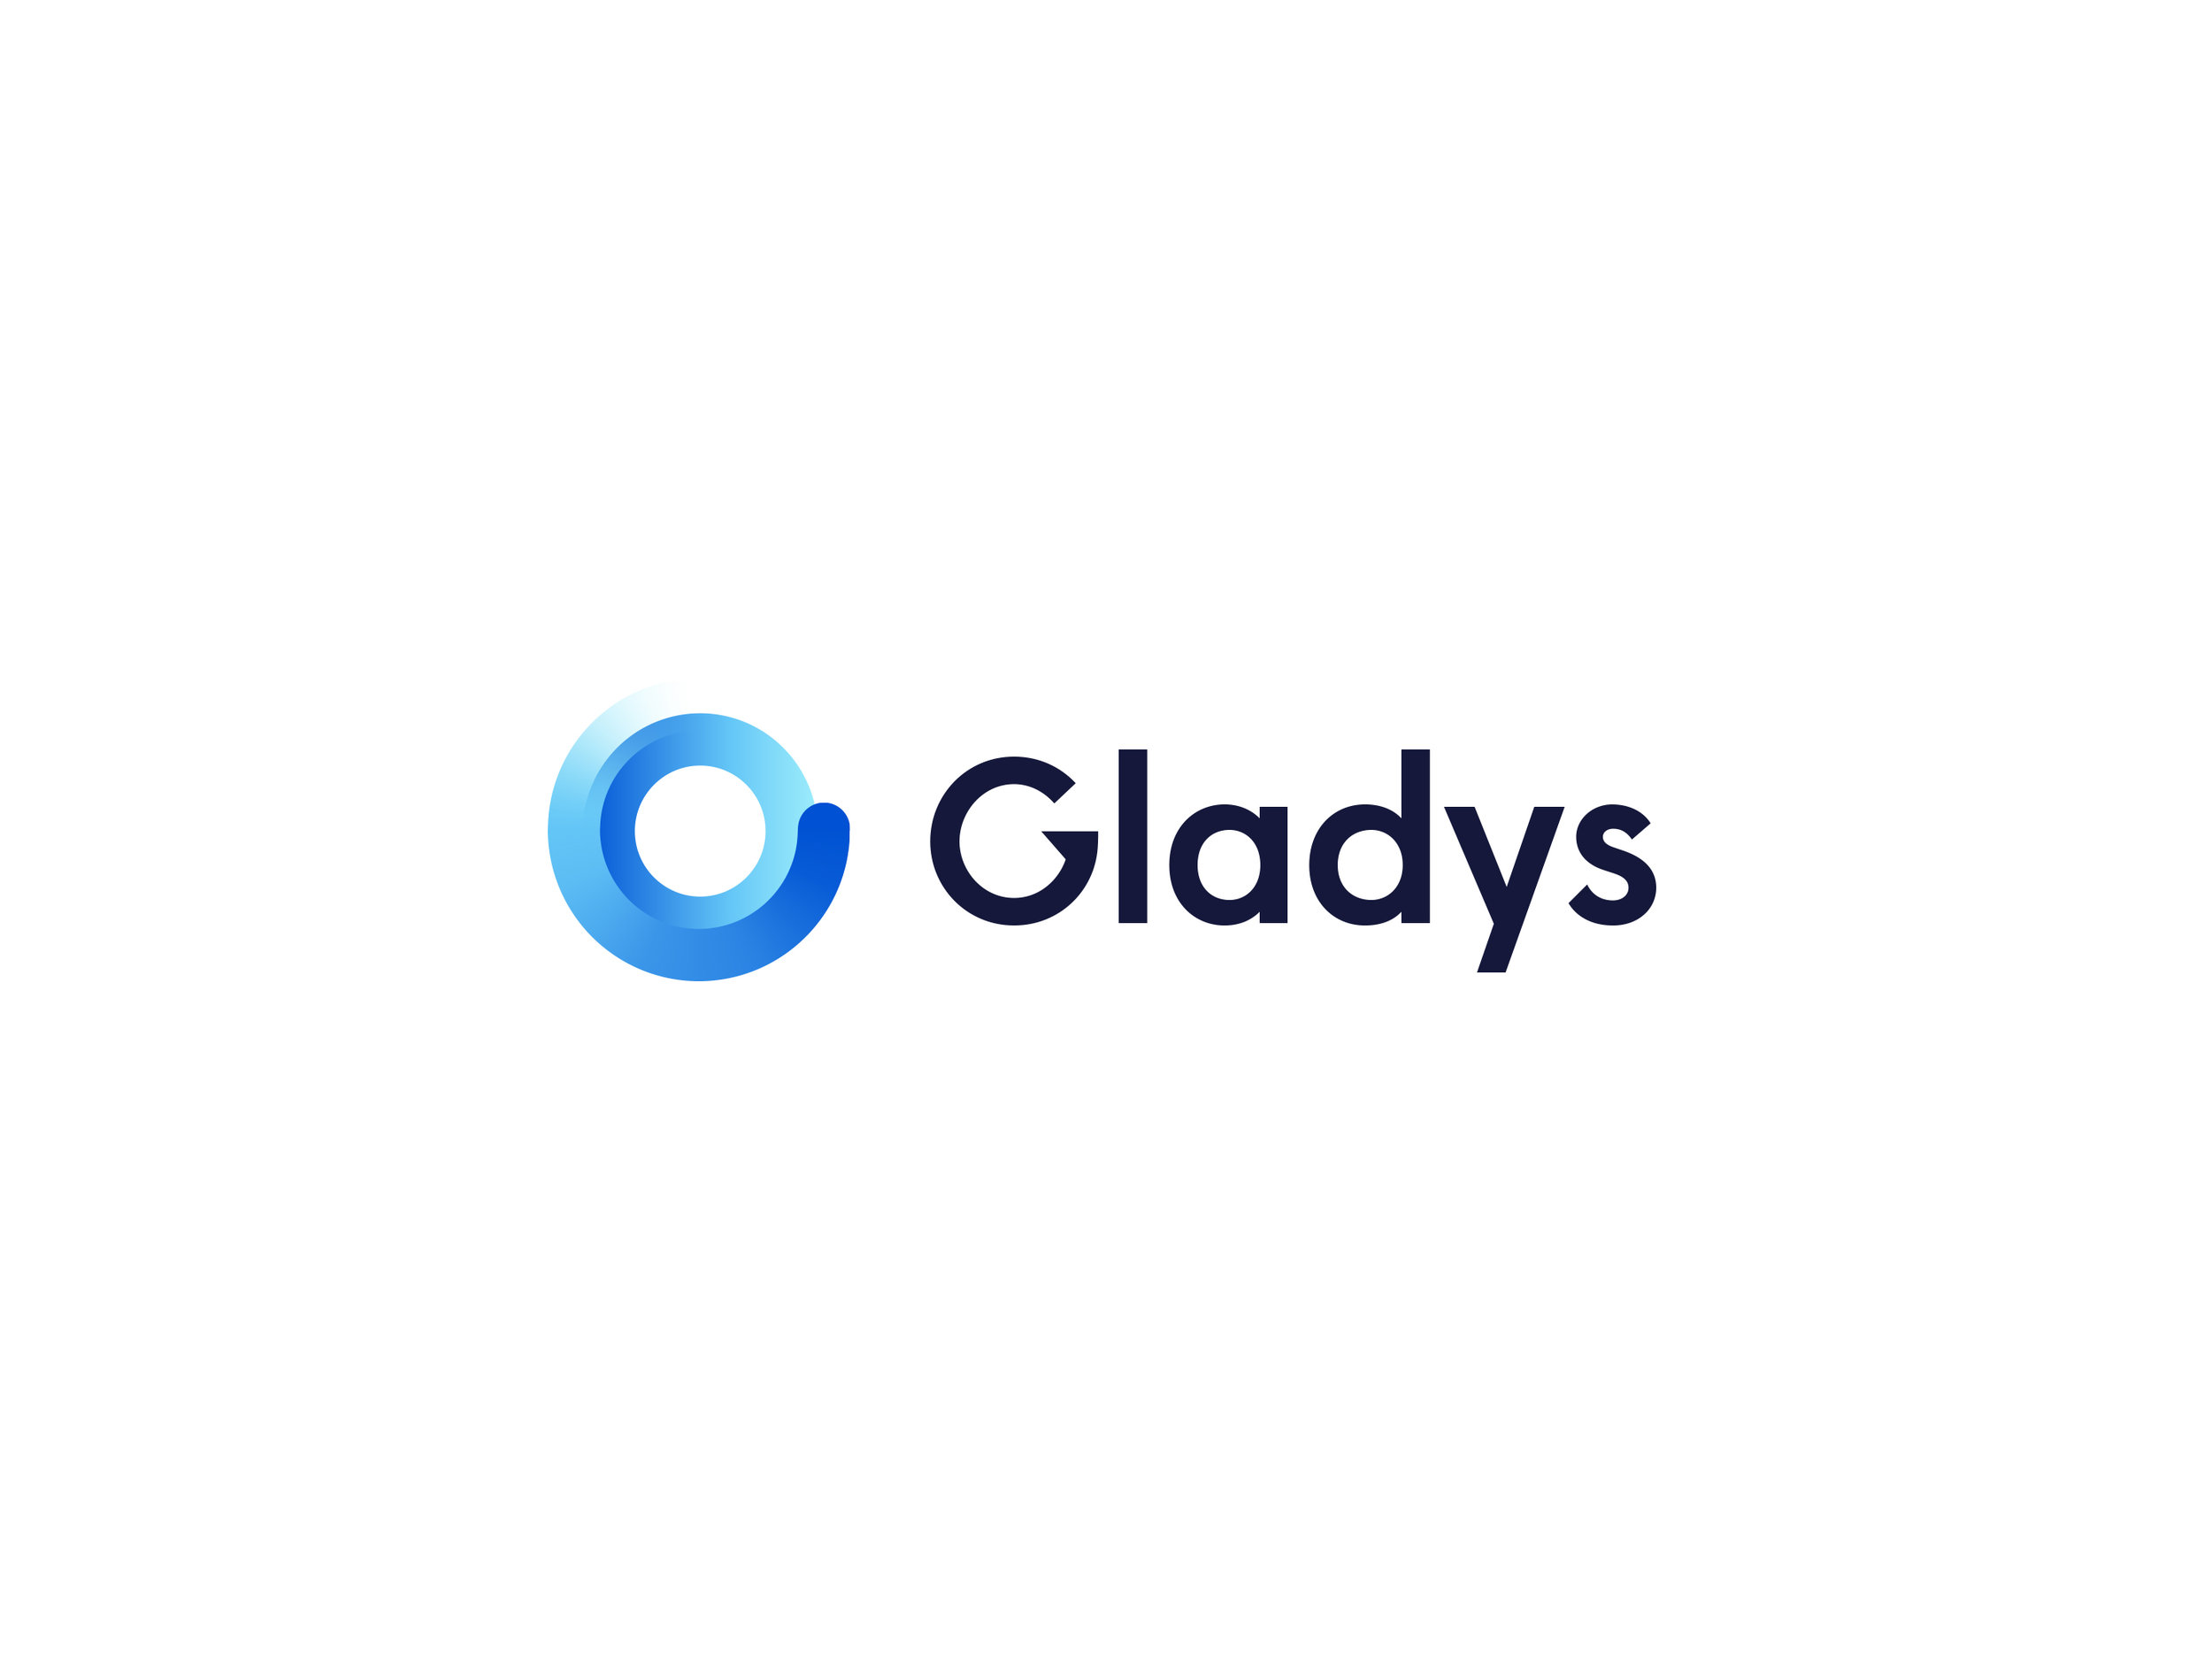 Keeping a circular shape, this represents a more digital representation while making an effective use of gradient colour to highlight Gladys and her learning and always adapting nature.